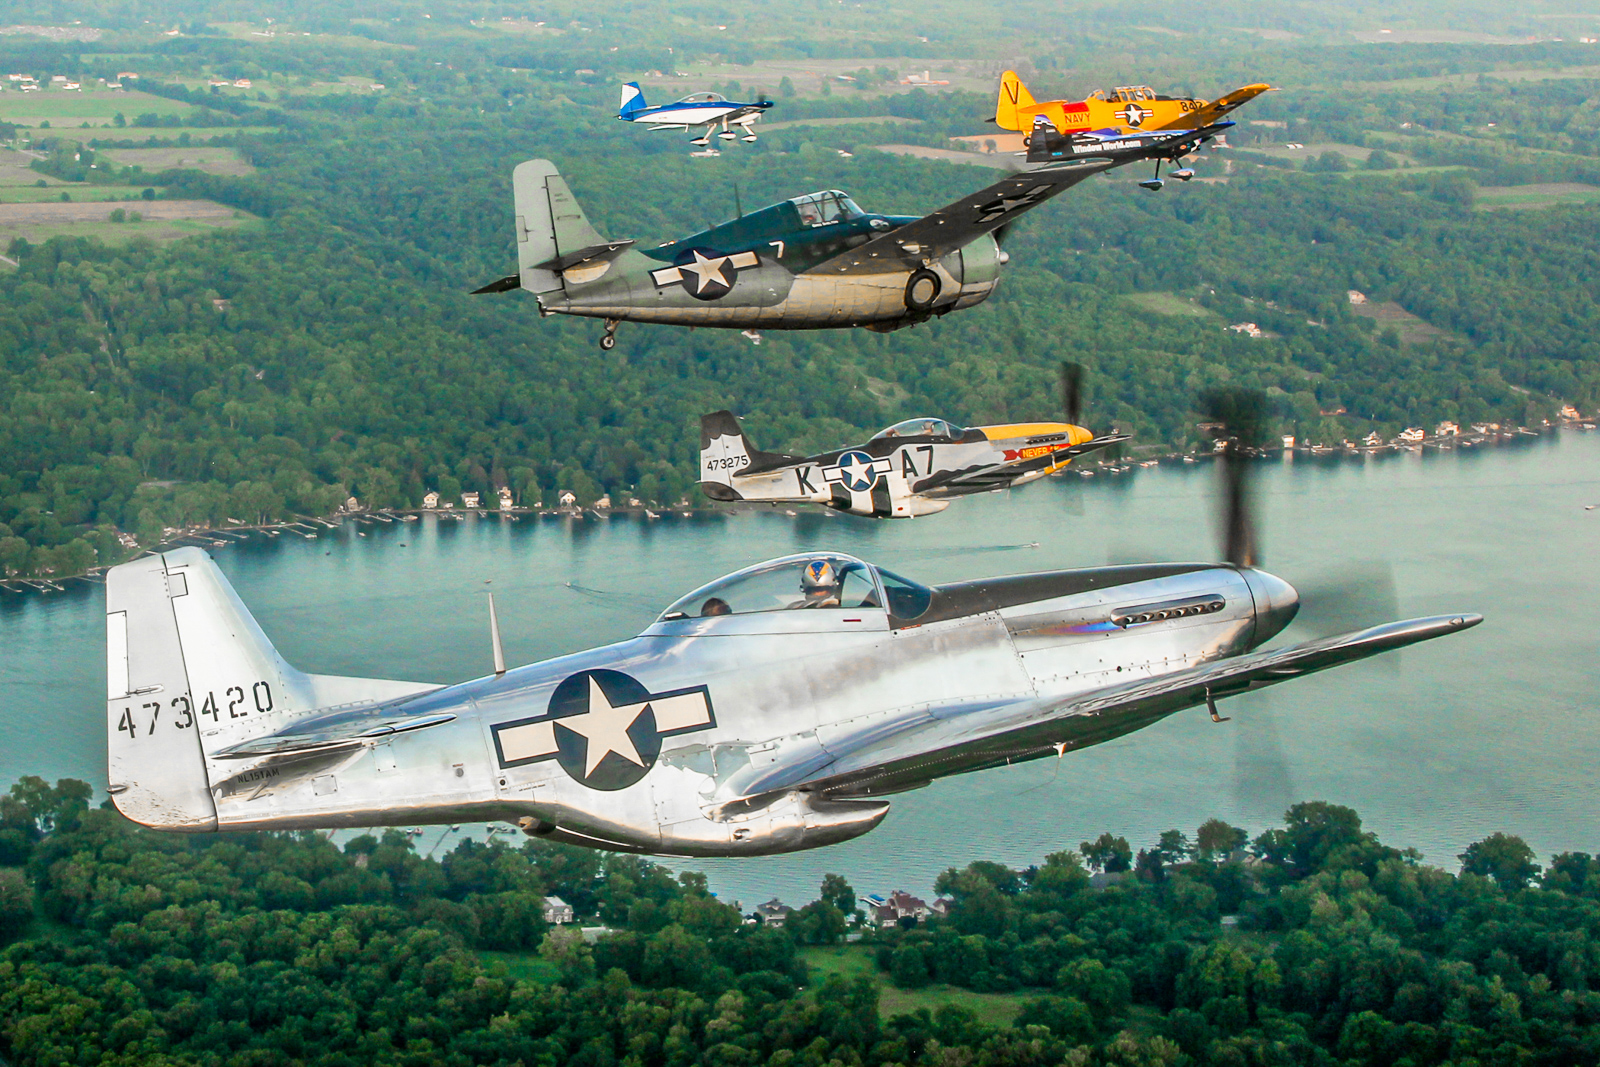 A mighty formation over the Genesee Valley featuring Andrew McKenna in his P-51D Mustang alongside Greg Shelton in the FM-2 Wildcat, Mark Murphy in another P-51D, Rob Holland in the MXS-RH, Jerry Kerby in the RV-8A and Dave Murphy in the Texan. (photo by Tom Pawlesh)